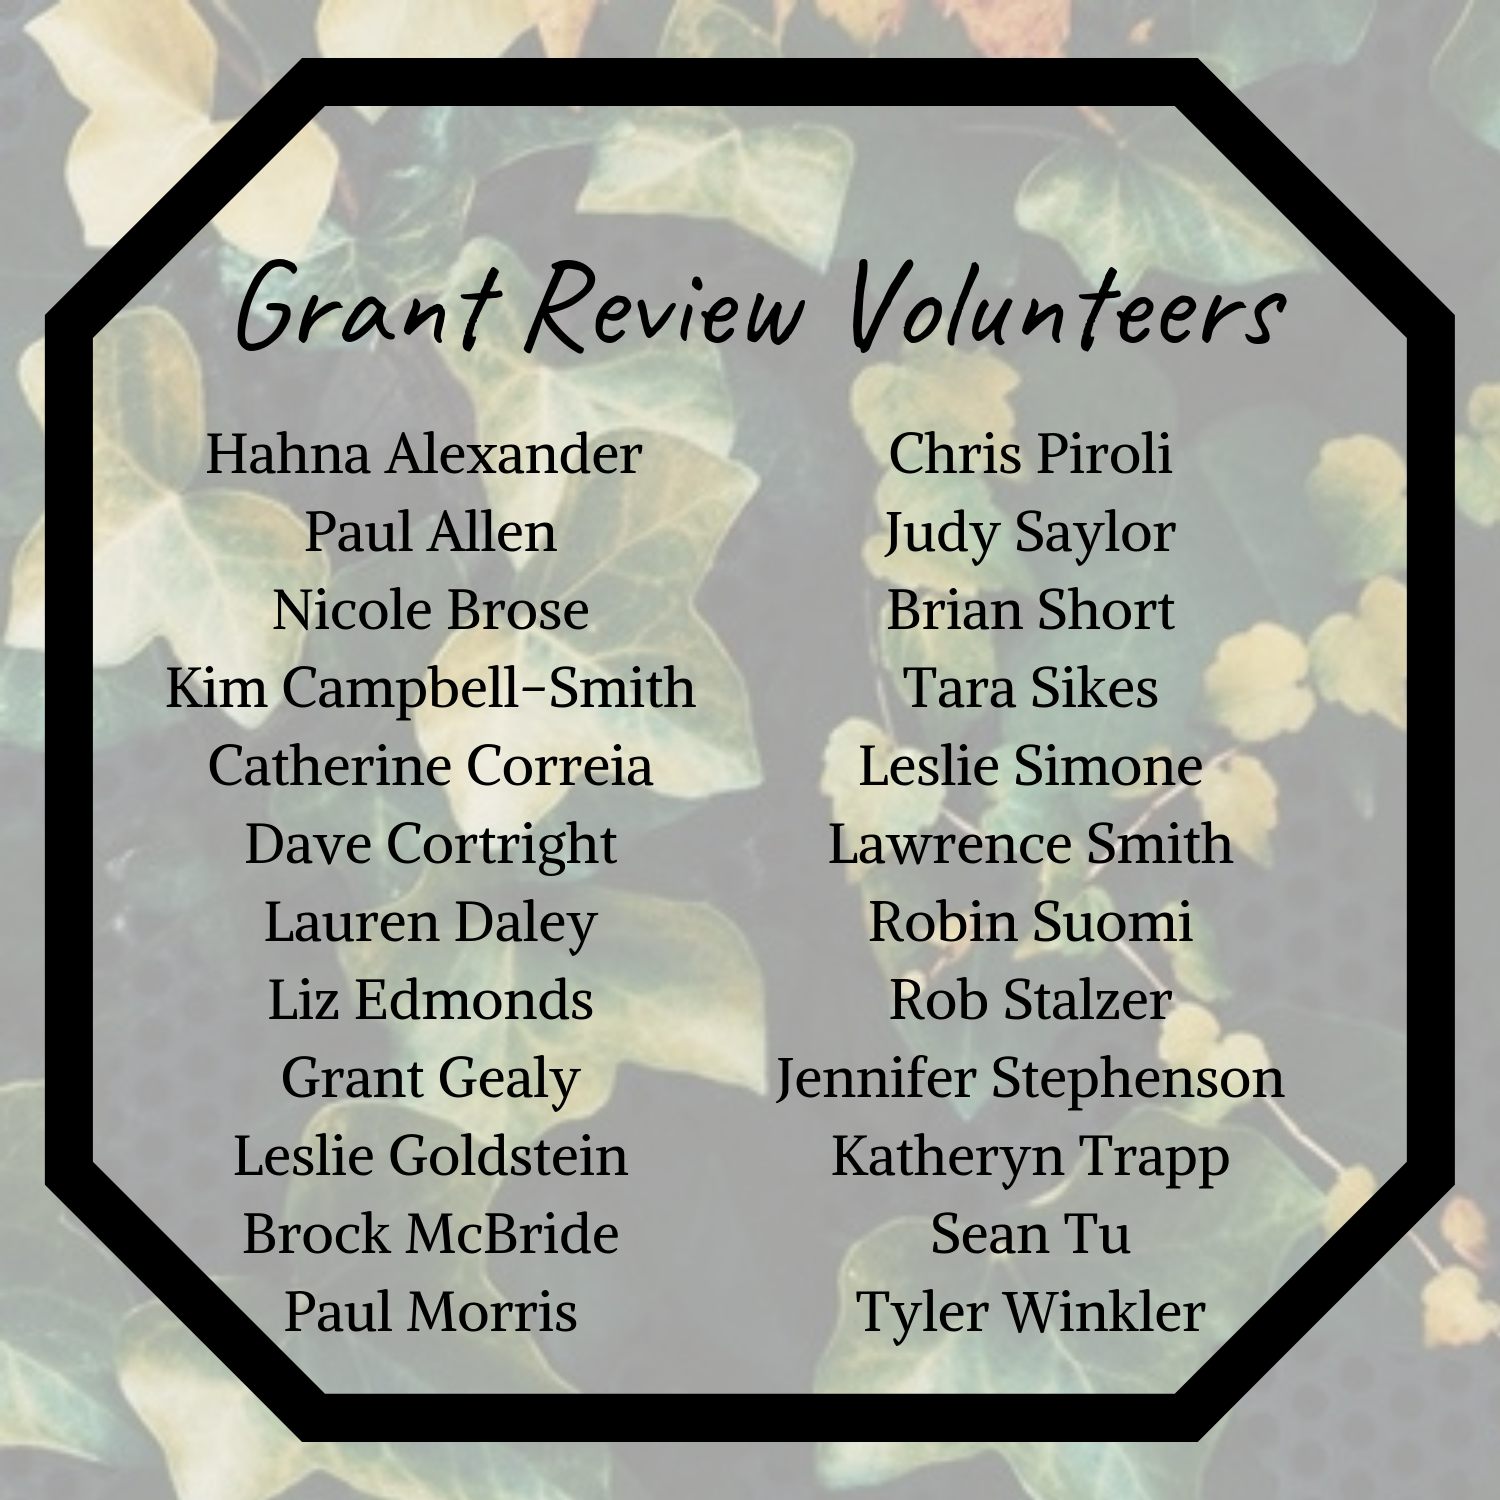 Grant review volunteers.png